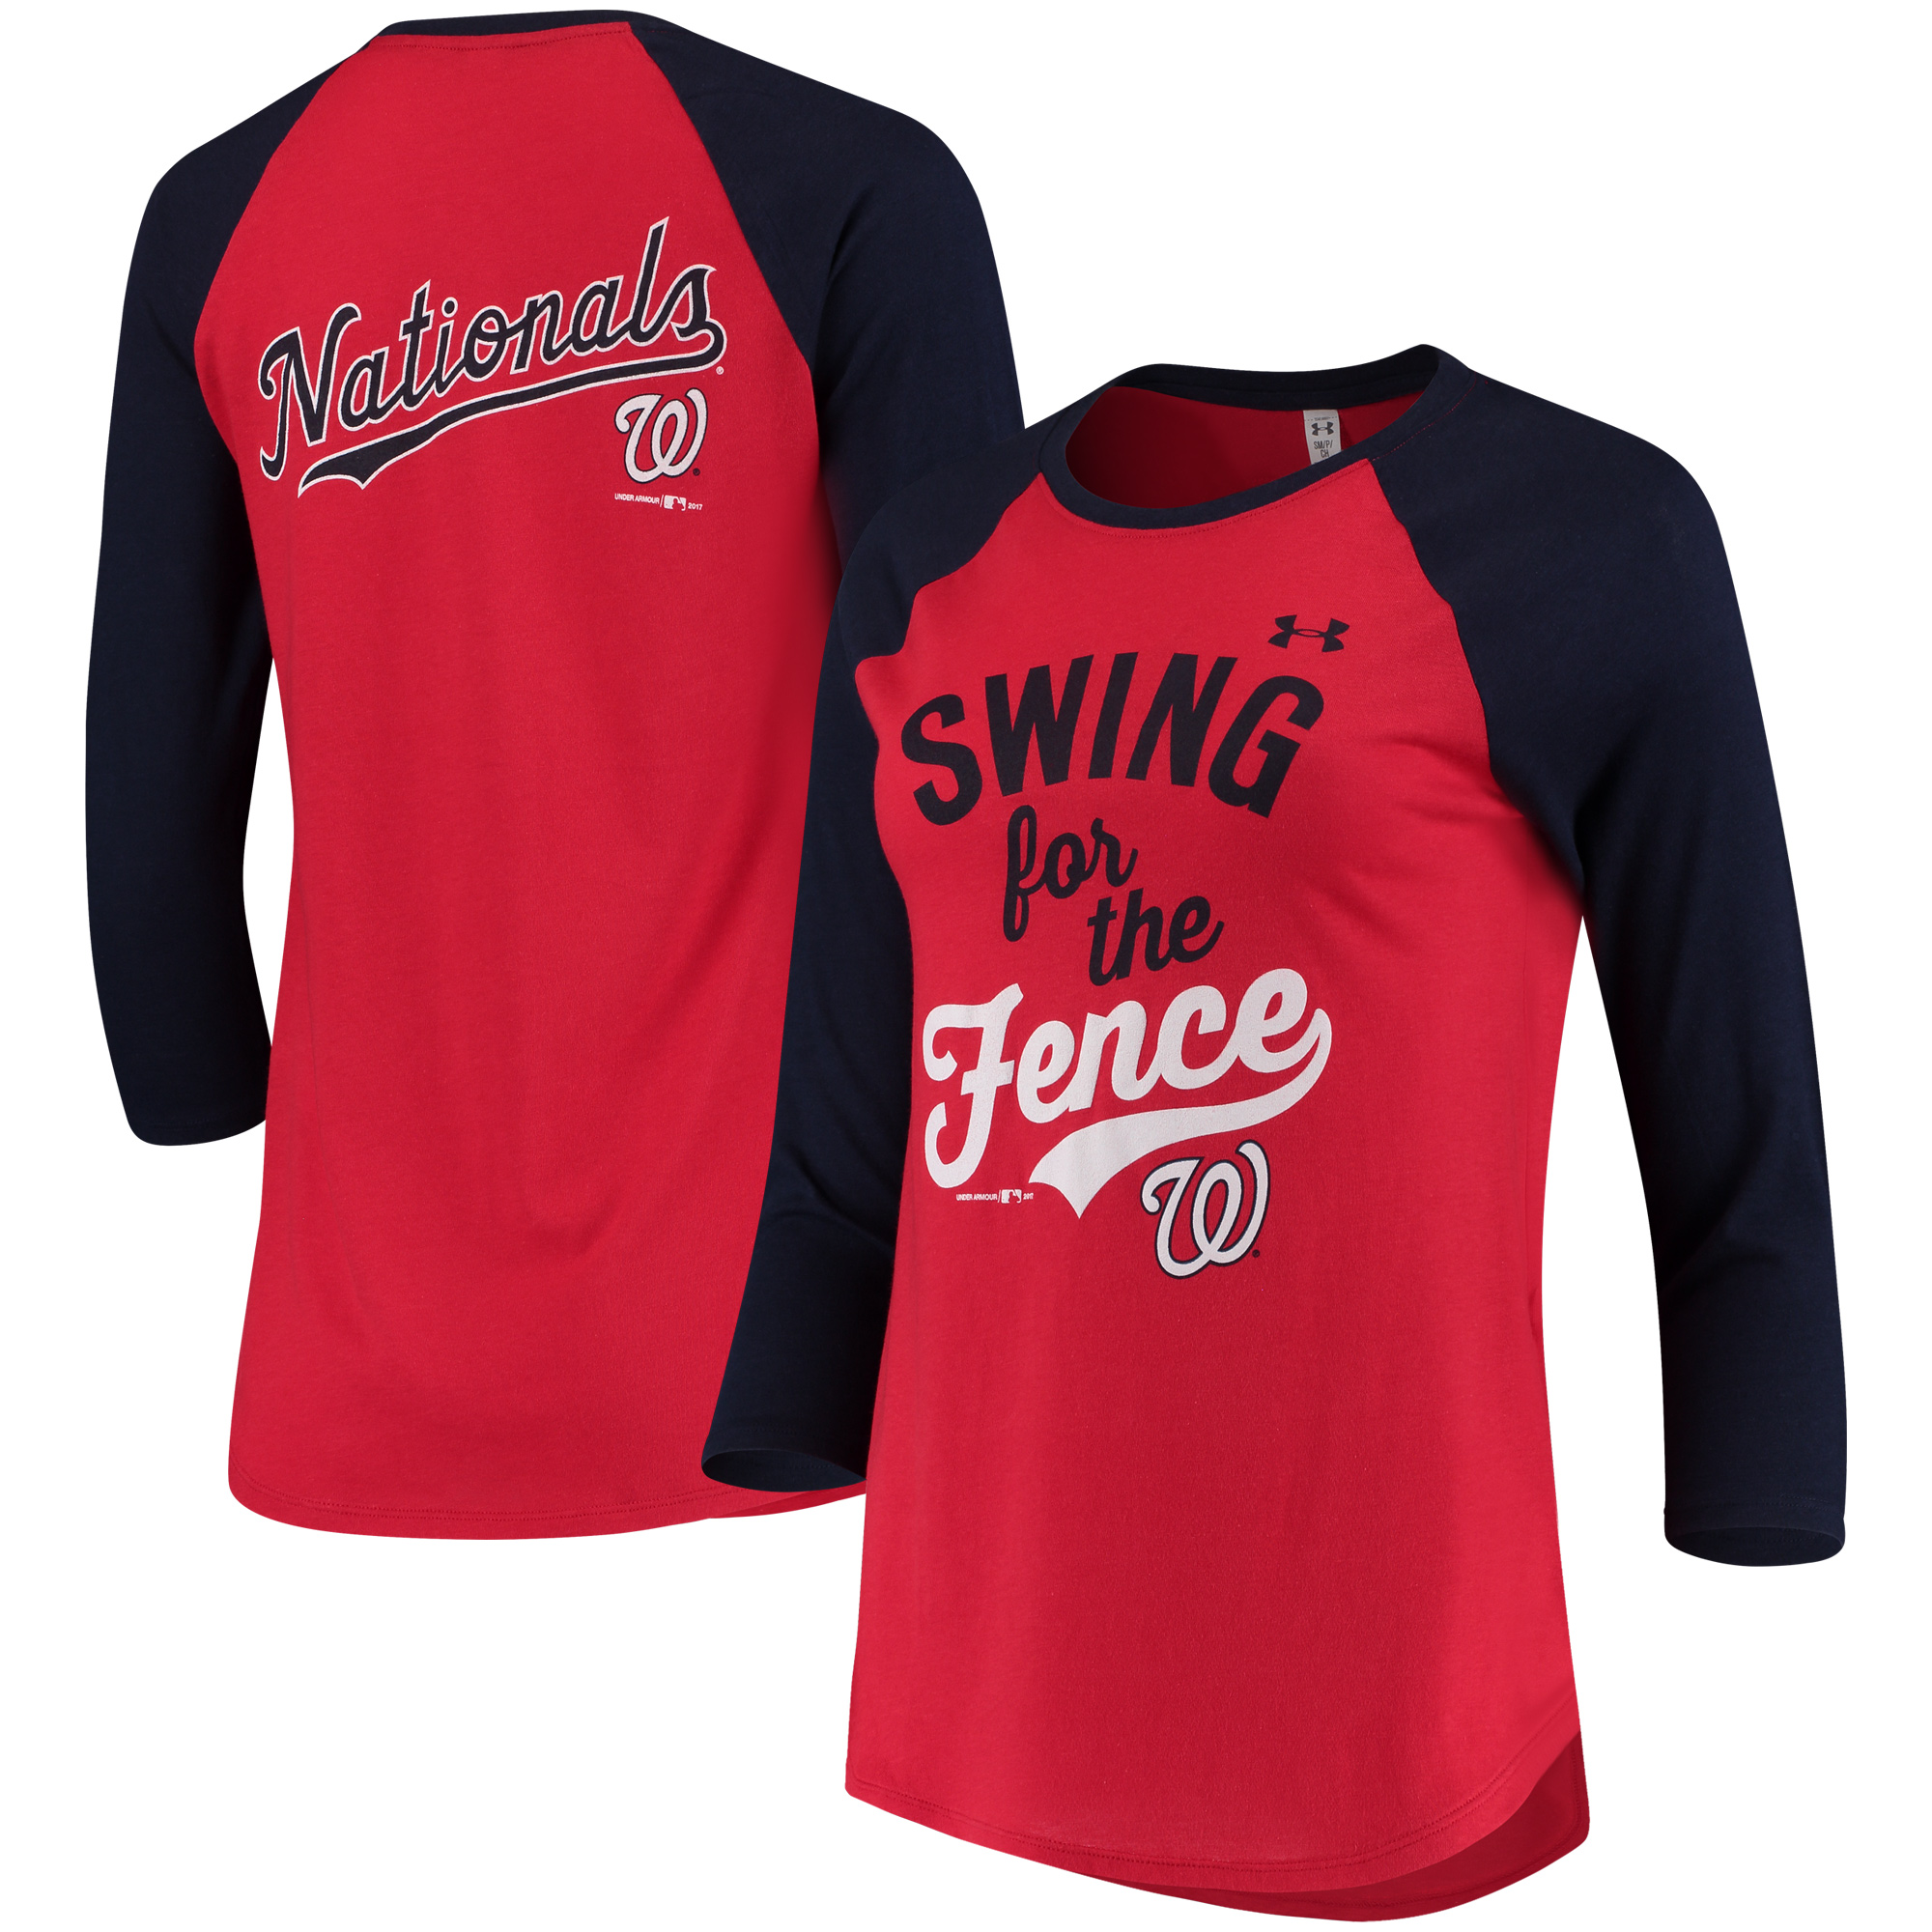 Washington Nationals Under Armour Women's Baseball 3/4-Sleeve T-Shirt - Red